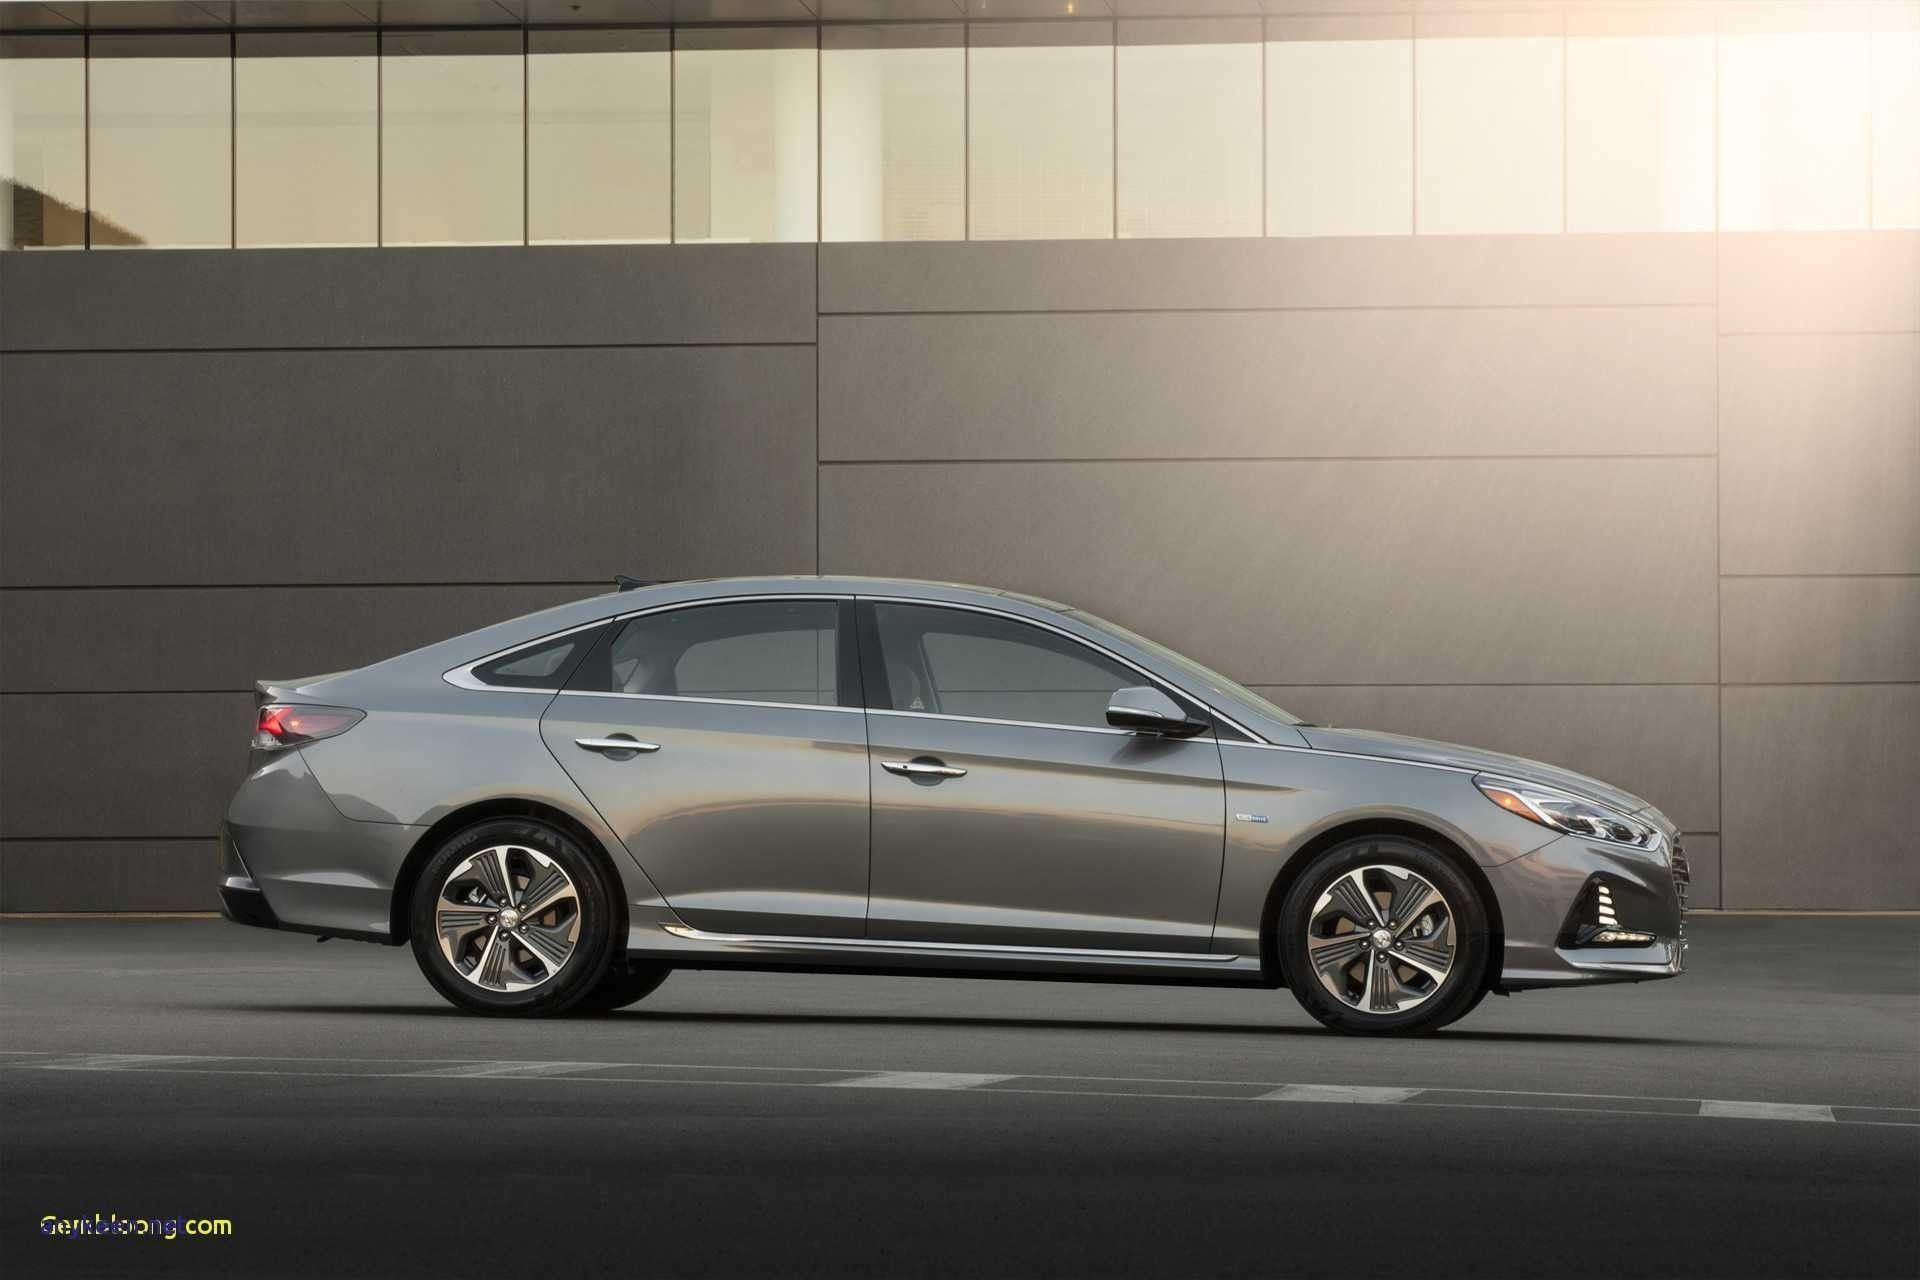 84 A 2020 Hyundai Sonata Hybrid Sport Review and Release date